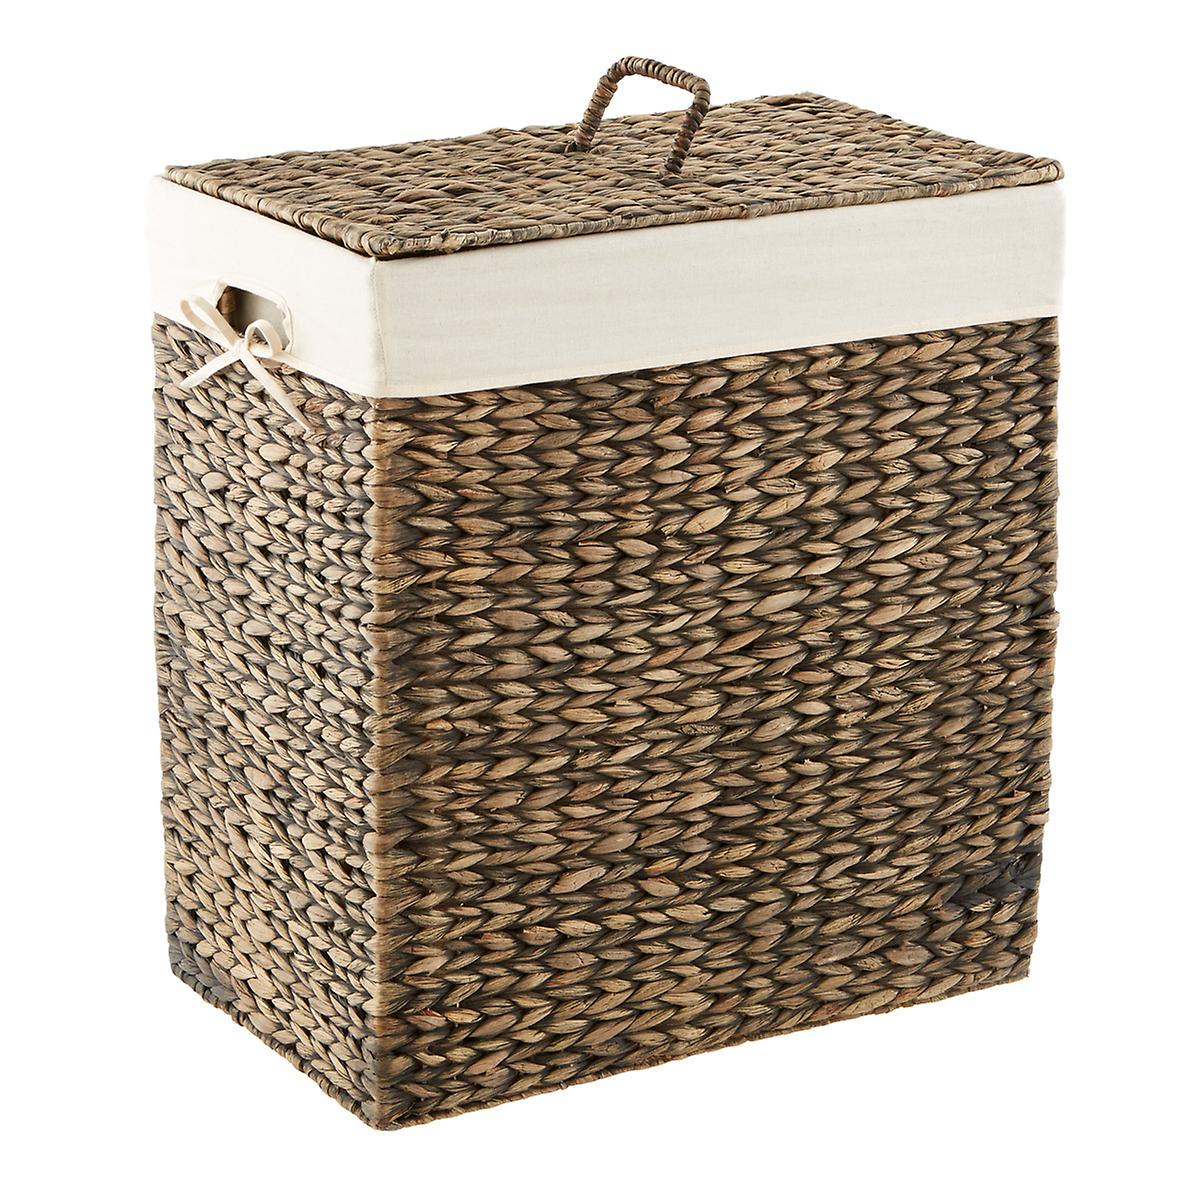 Mocha Rectangular Water Hyacinth Hamper